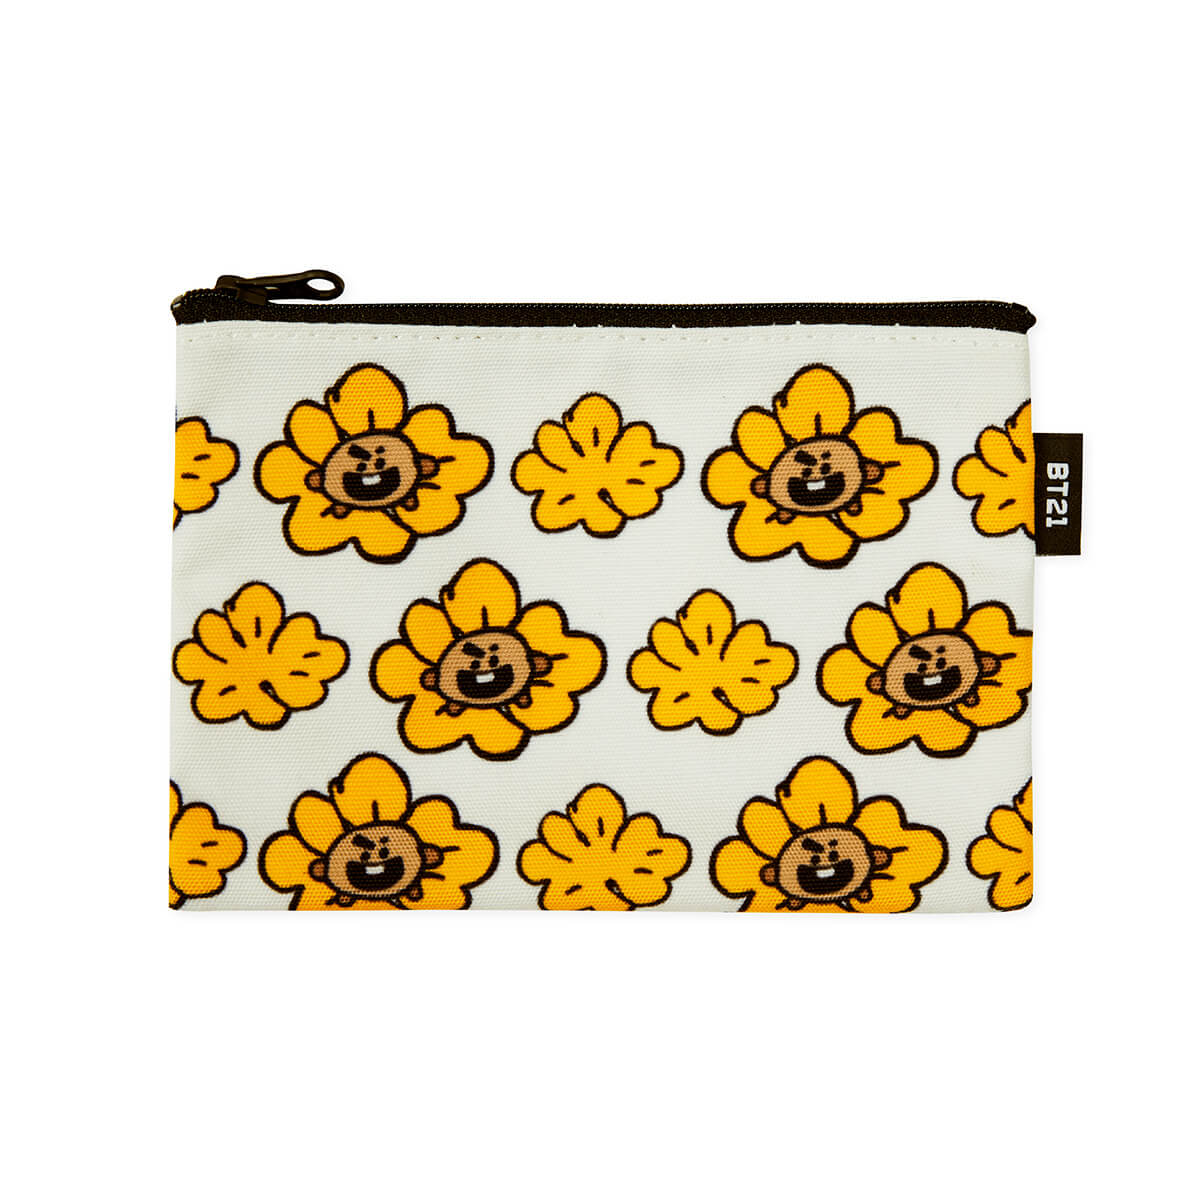 BT21 SHOOKY Flower Pattern Mini Pouch White